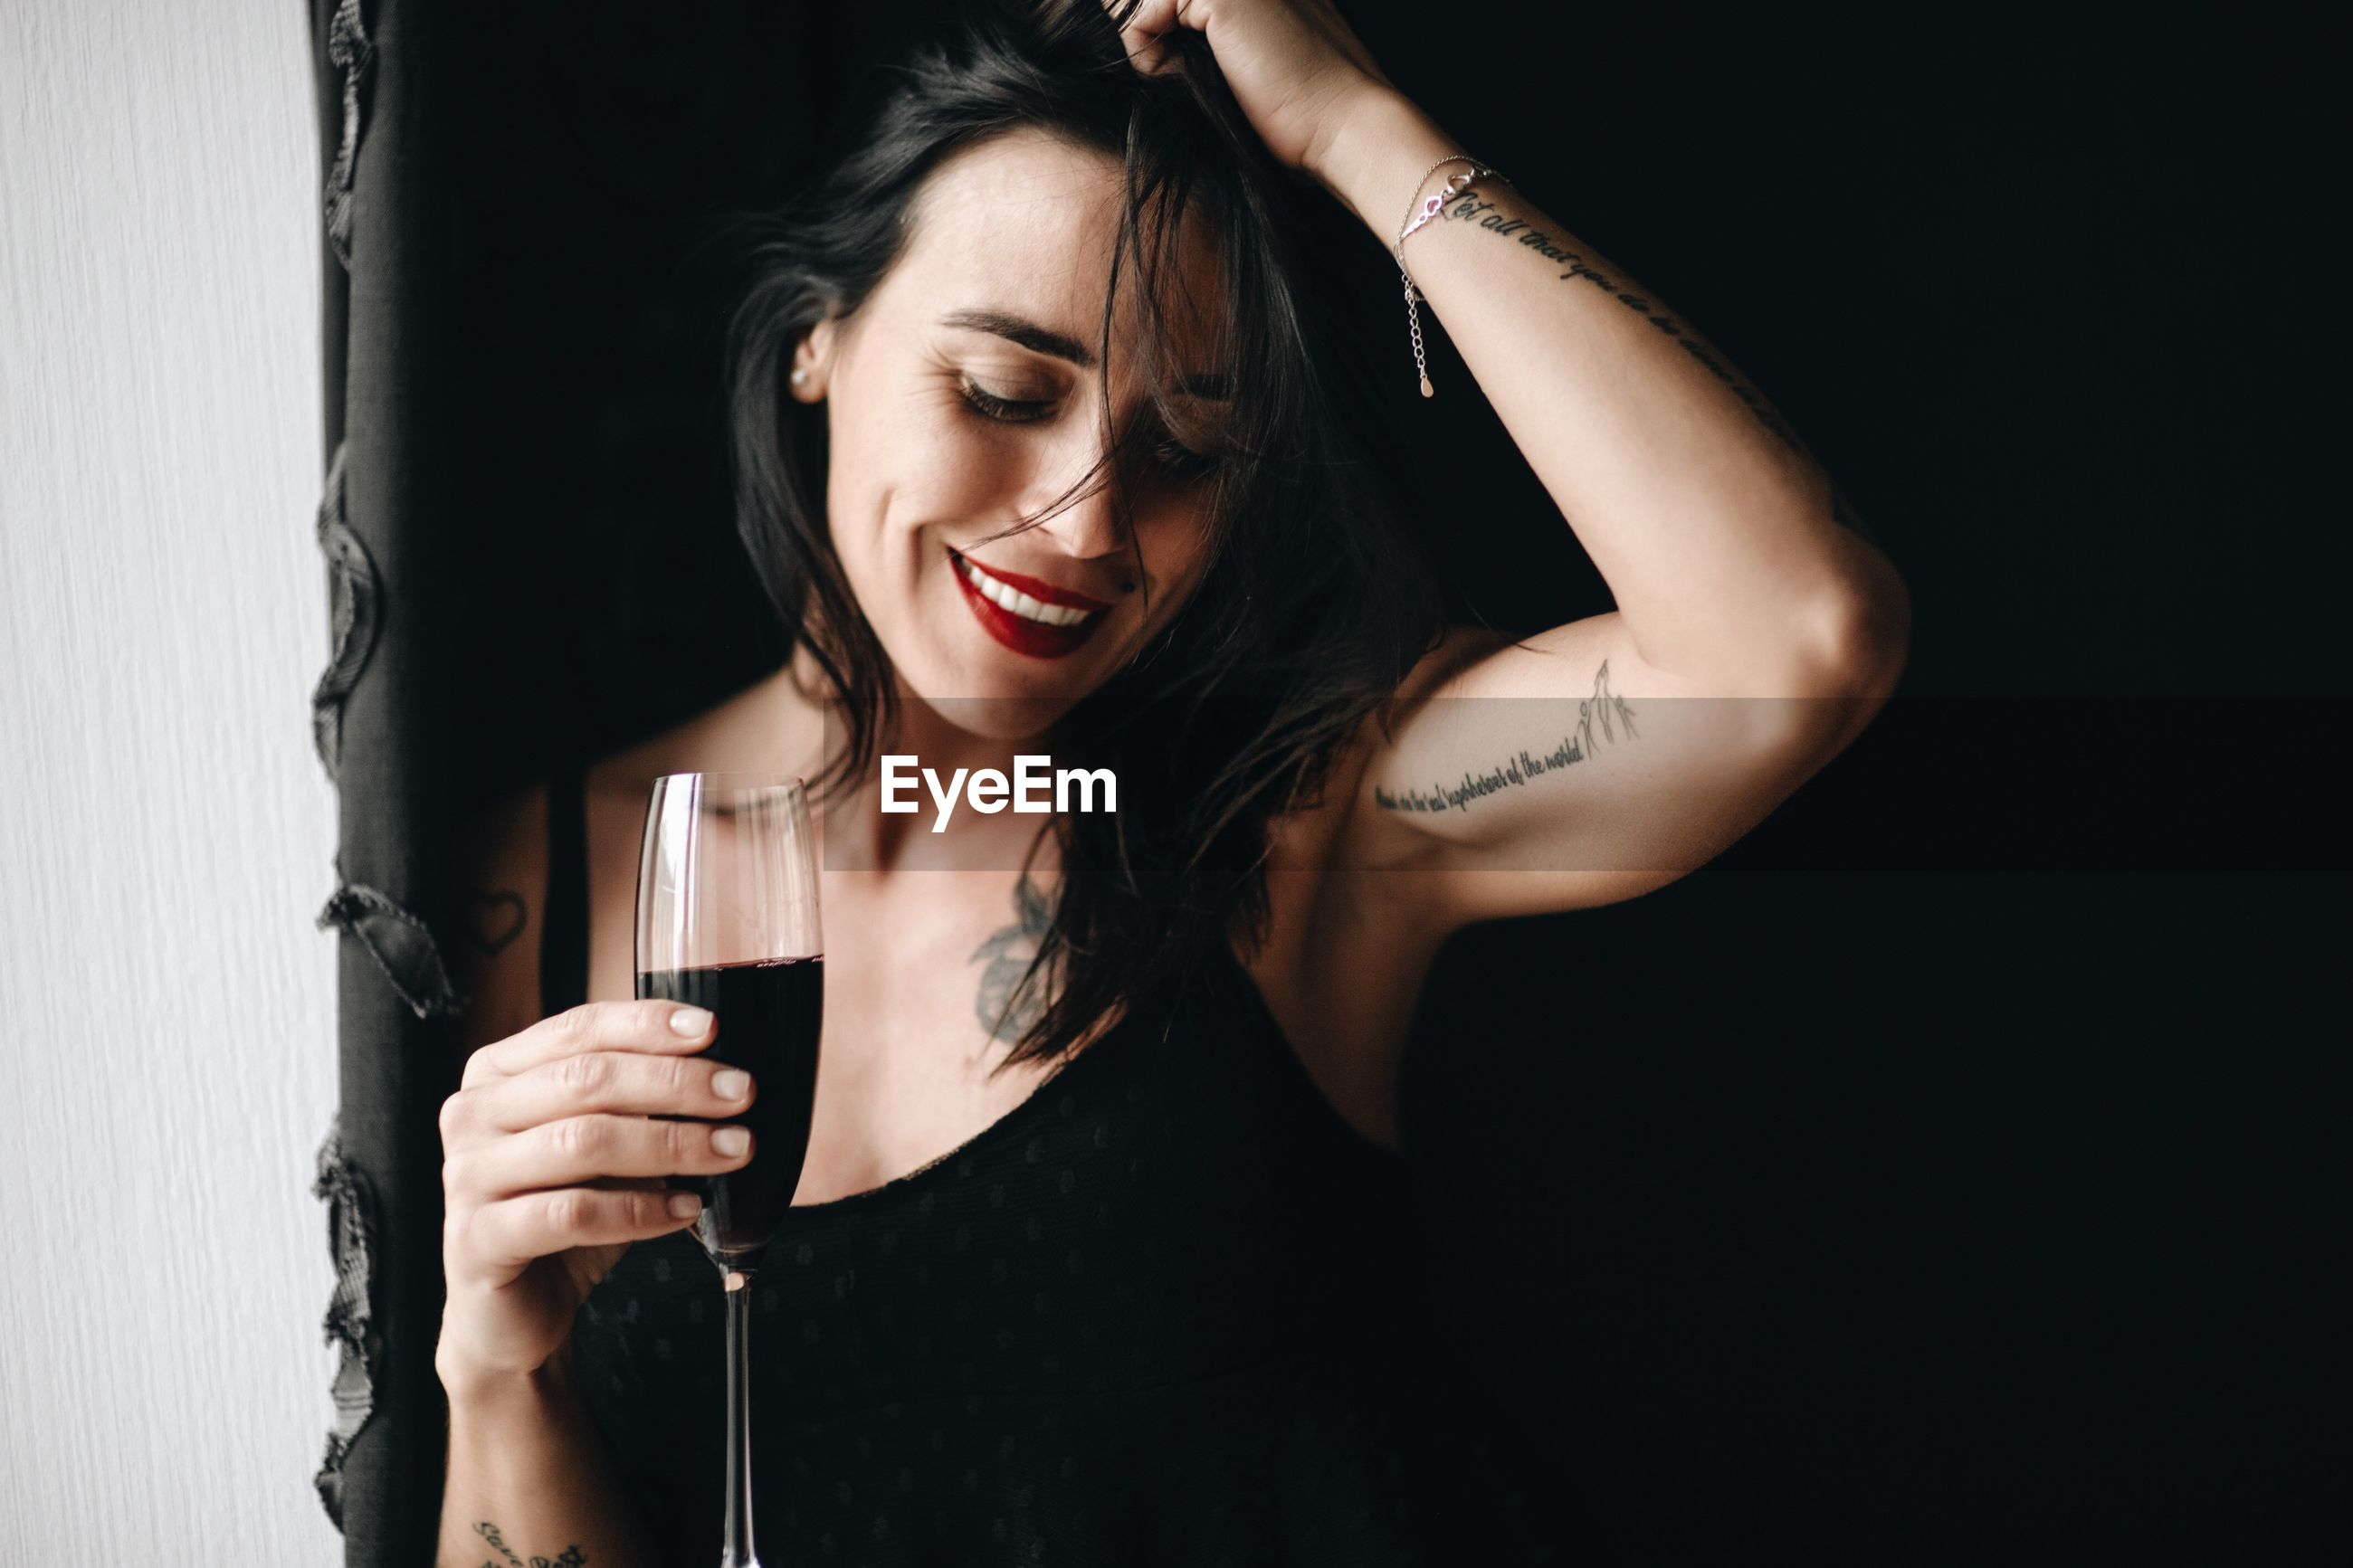 Smiling woman holding wineglass